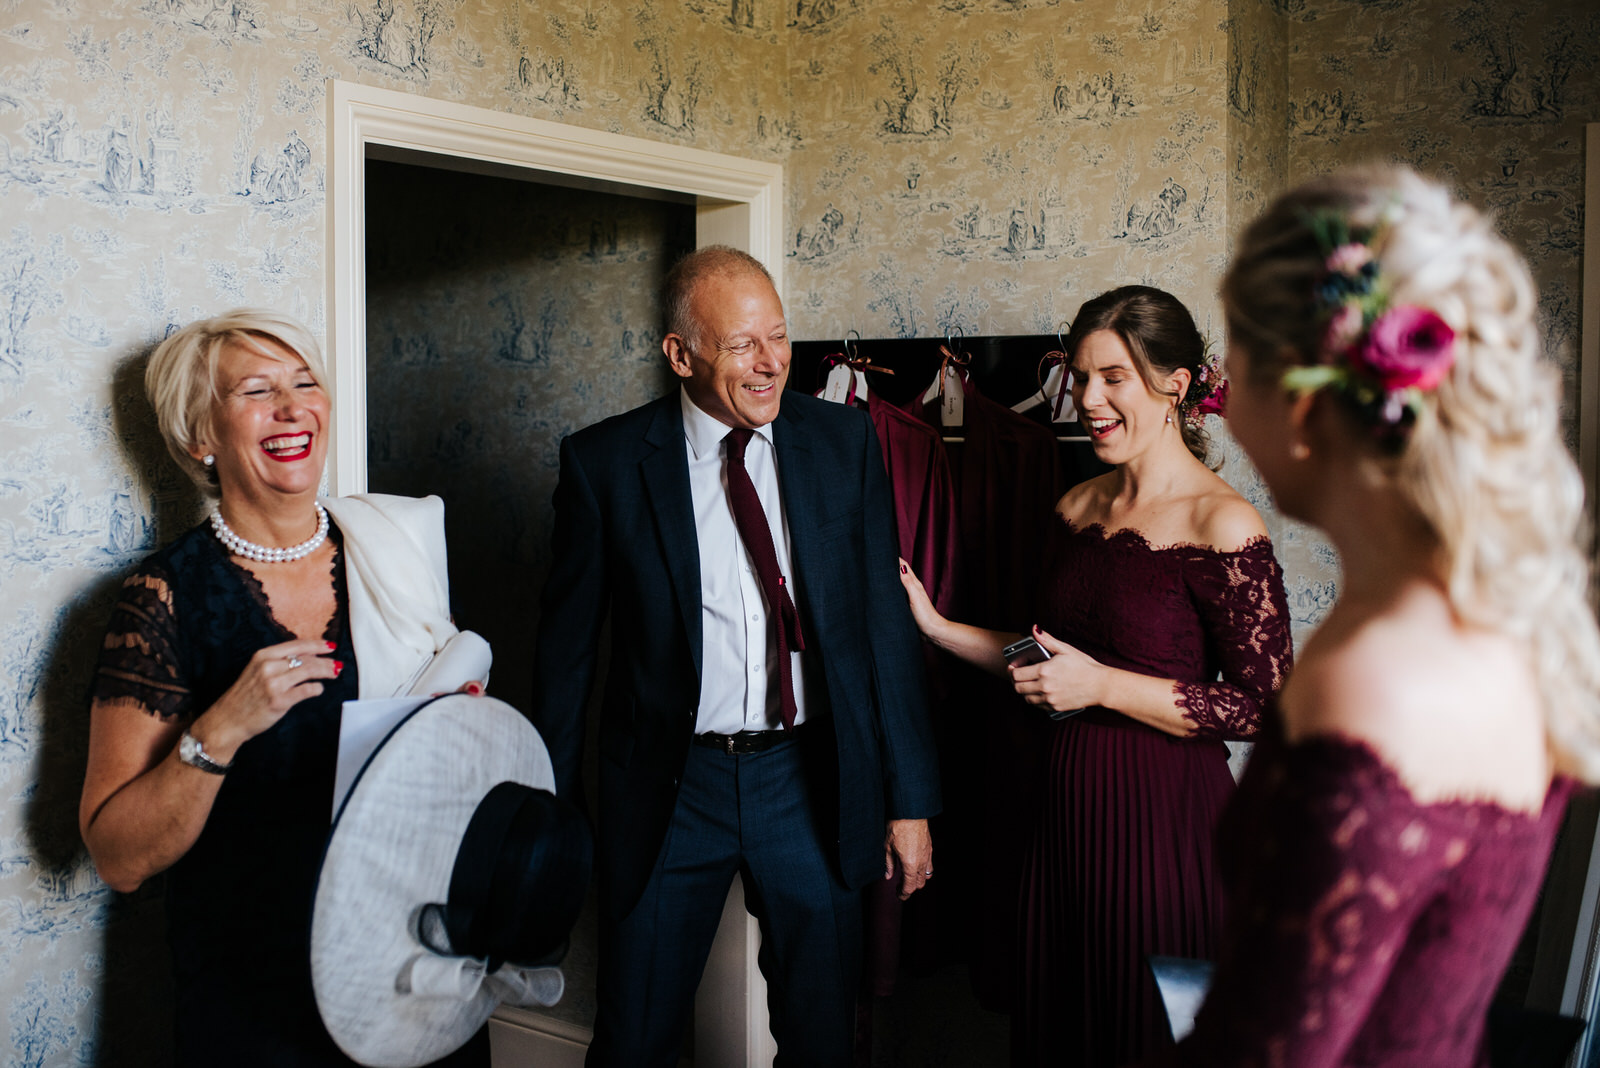 Bride's mom, step-dad and two bridesmaids share a special moment